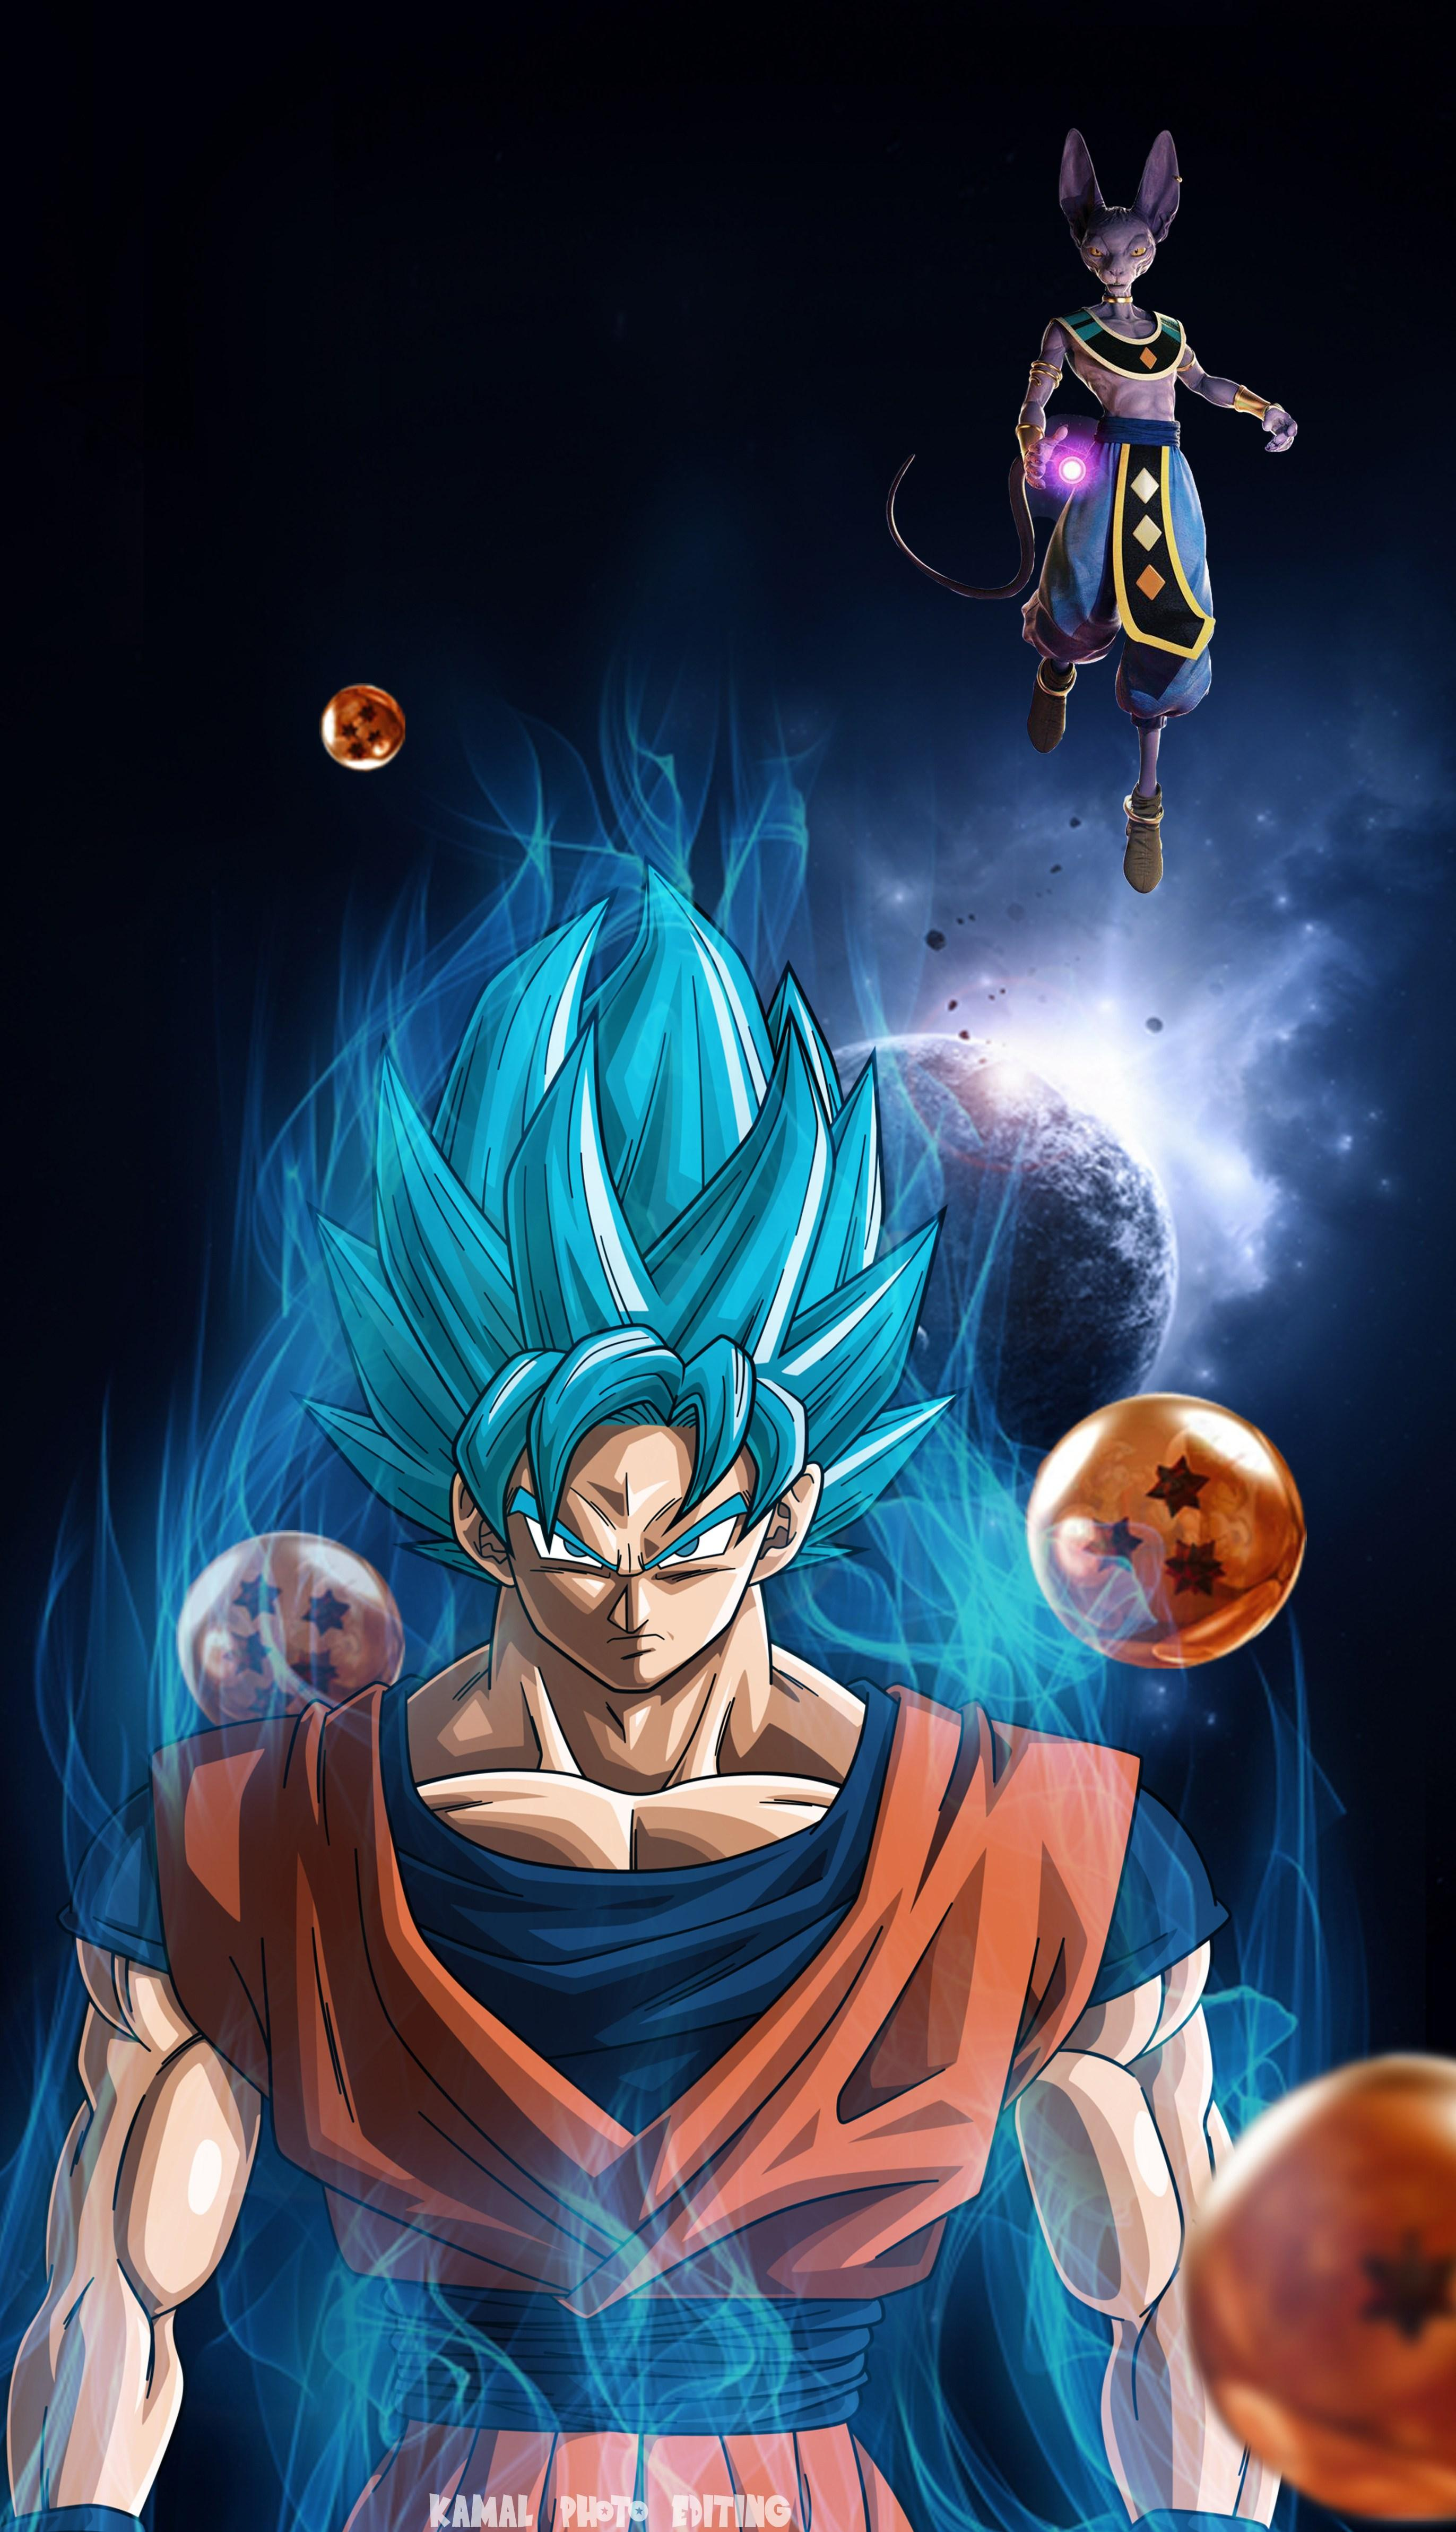 Dbz Live Wallpaper Iphone Posted By Ethan Mercado